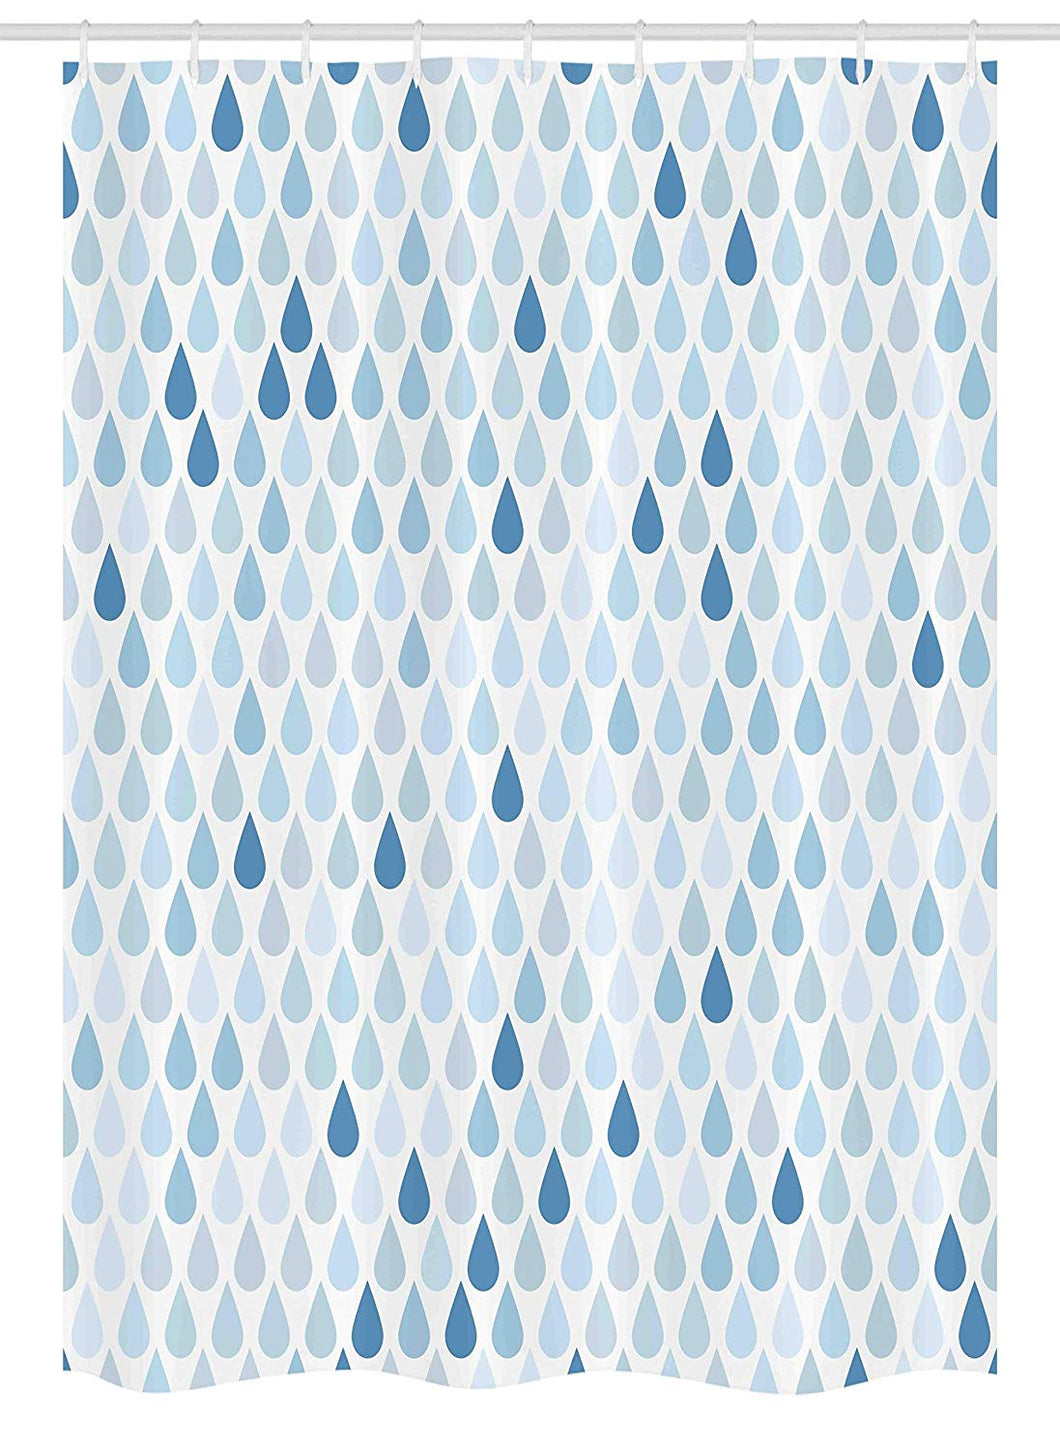 Ambesonne Blue and White Stall Shower Curtain, Minimalist Rain Drops Motive in Tones Tears of Earth Air Gravity Image Art, Fabric Bathroom Decor Set with Hooks, 54